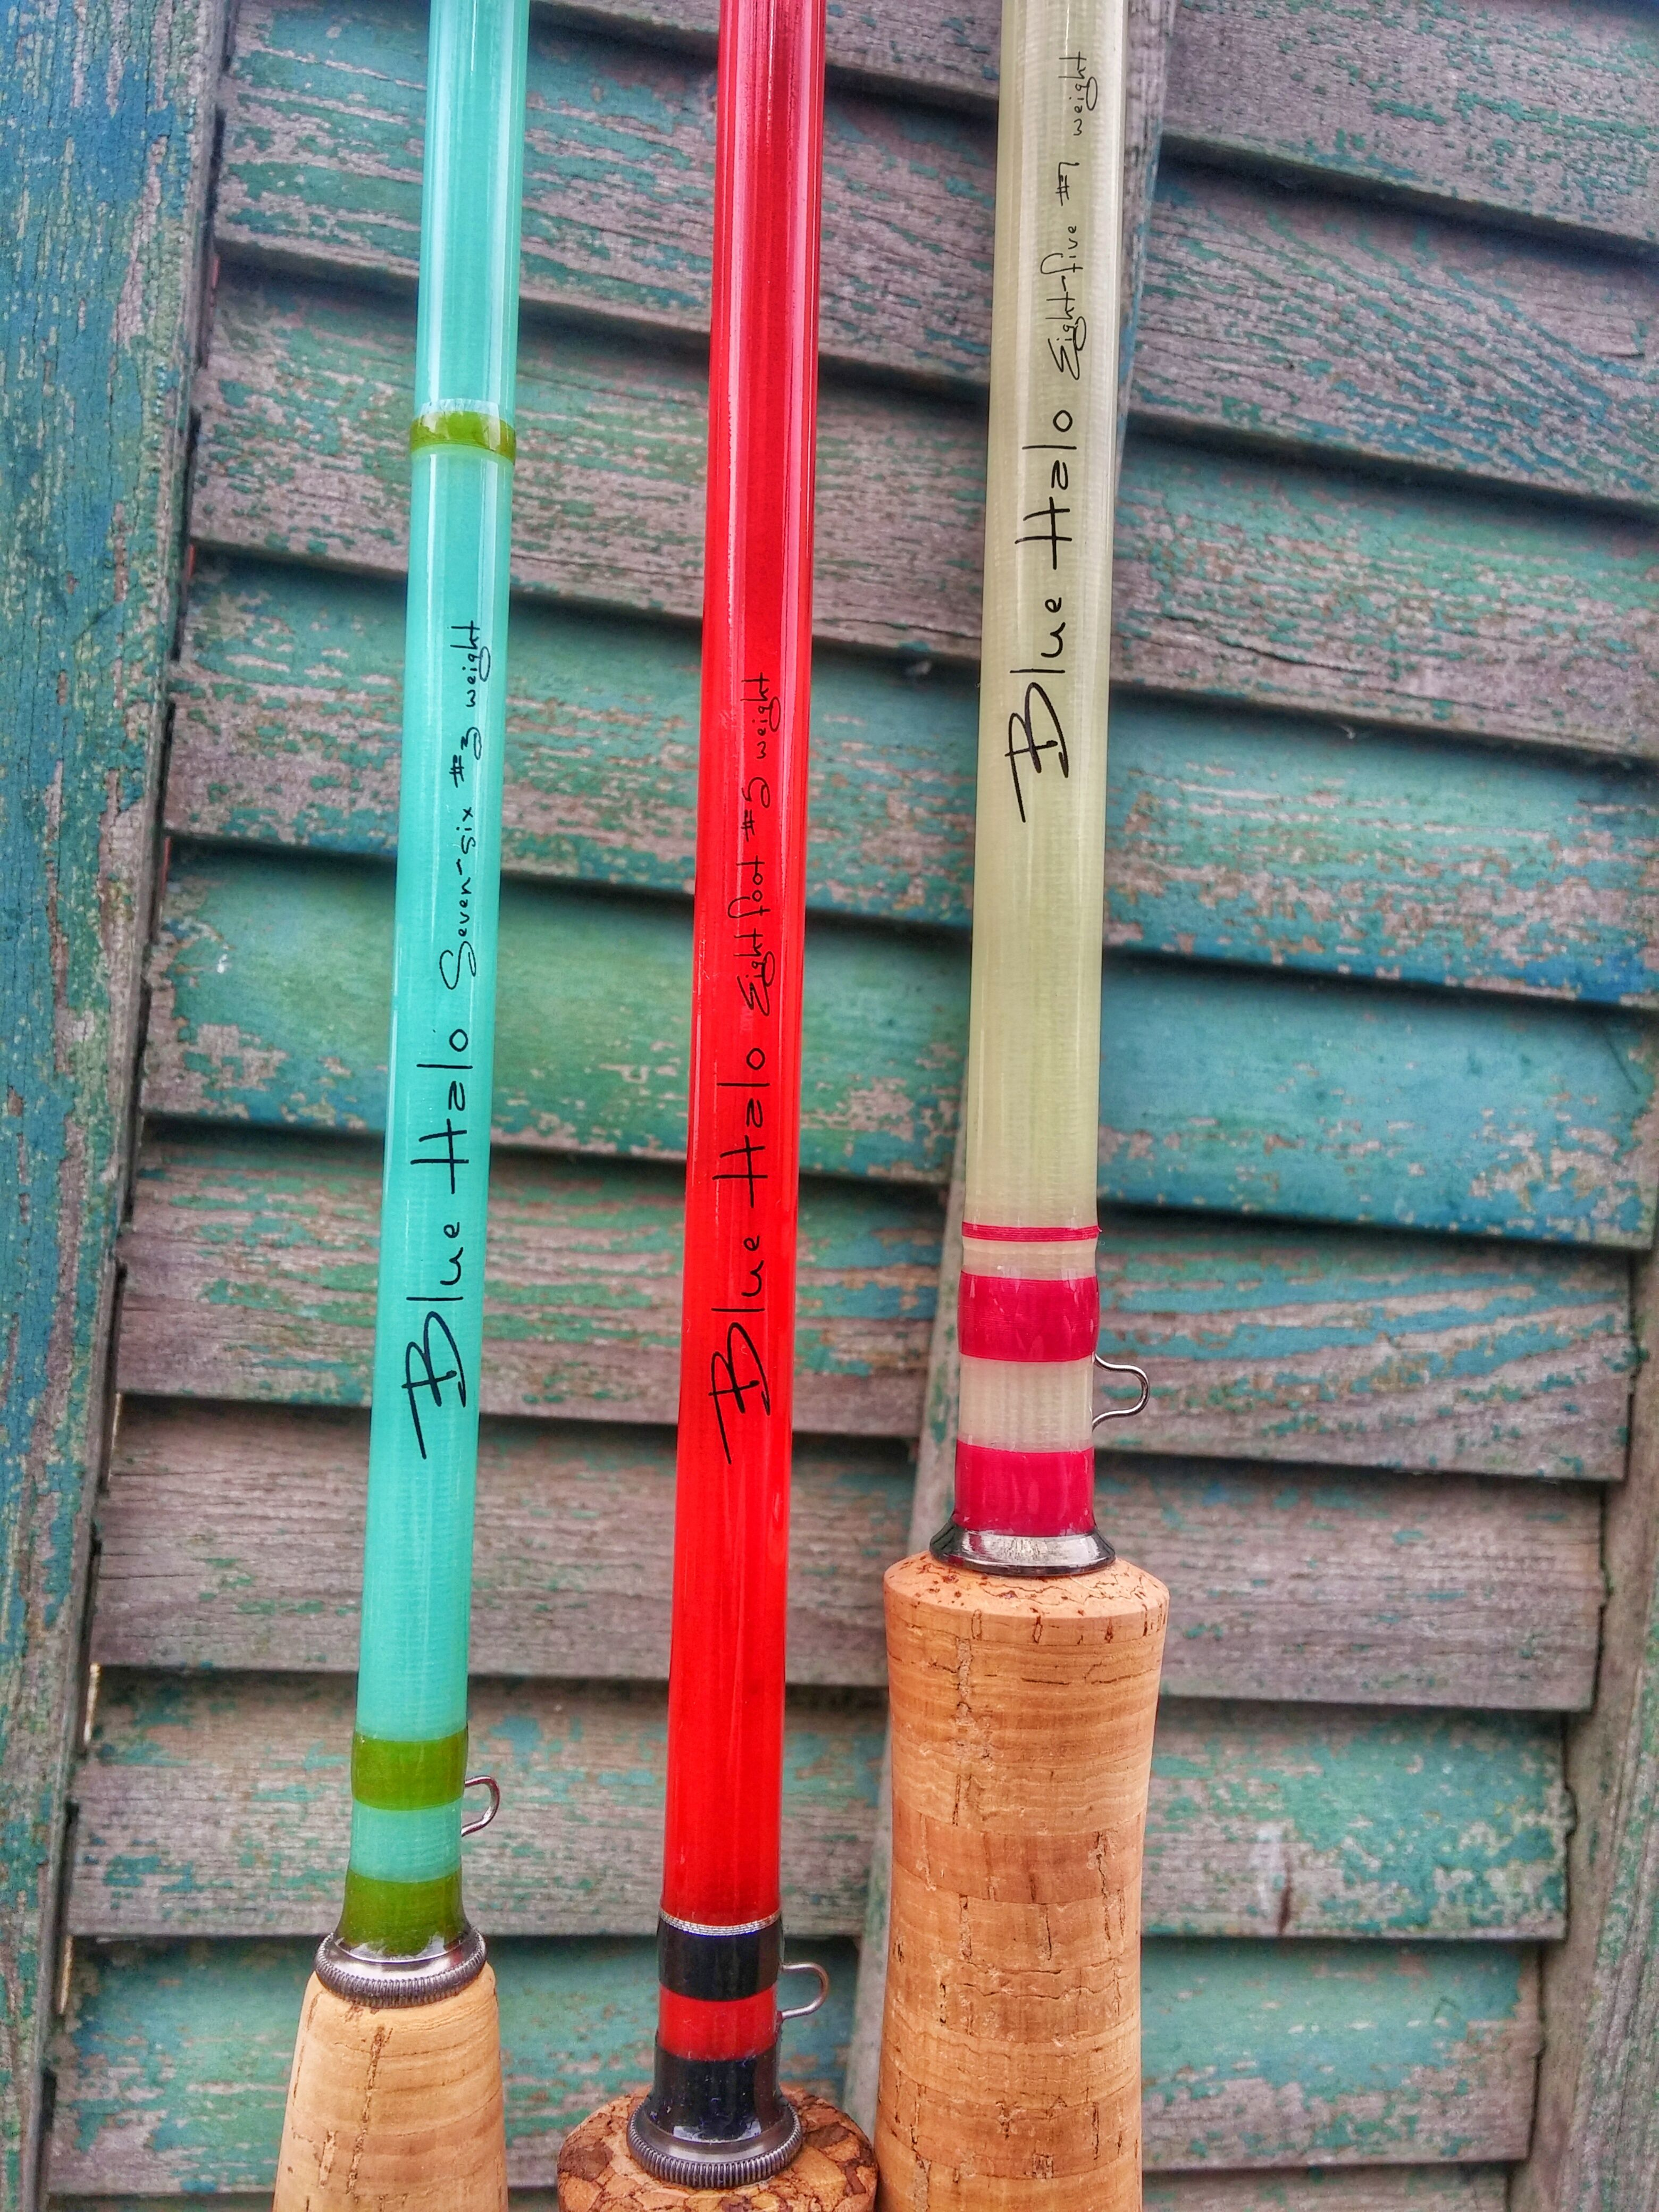 My personal fiberglass rod collection blue halo jade 3wt for Halo fishing rods